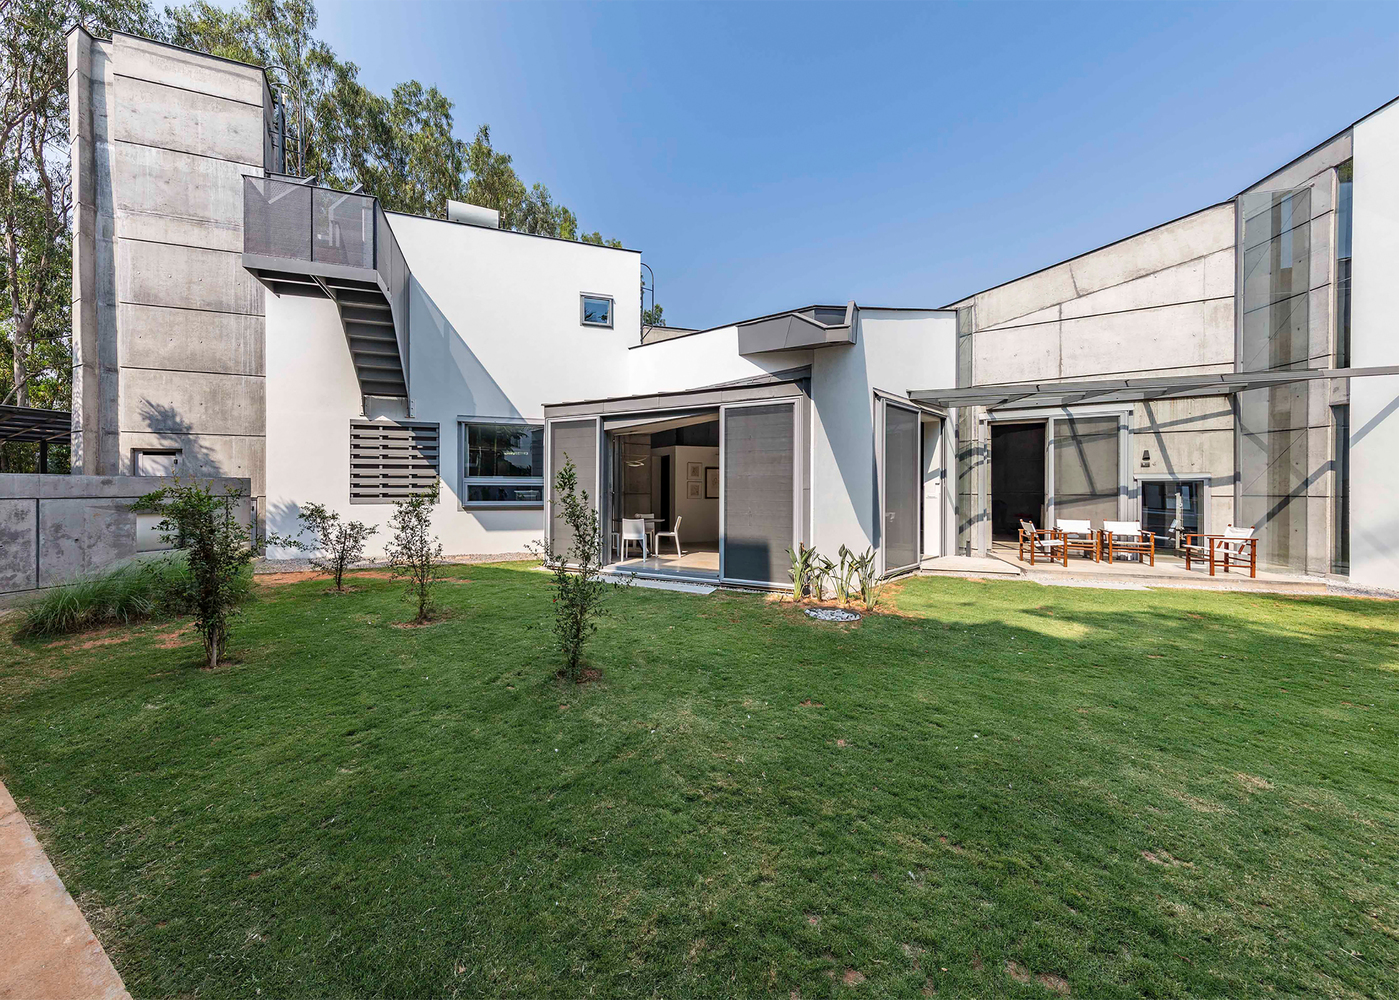 Top 50 Architecture Firms in Bangalore - Mathew and Ghosh Architects